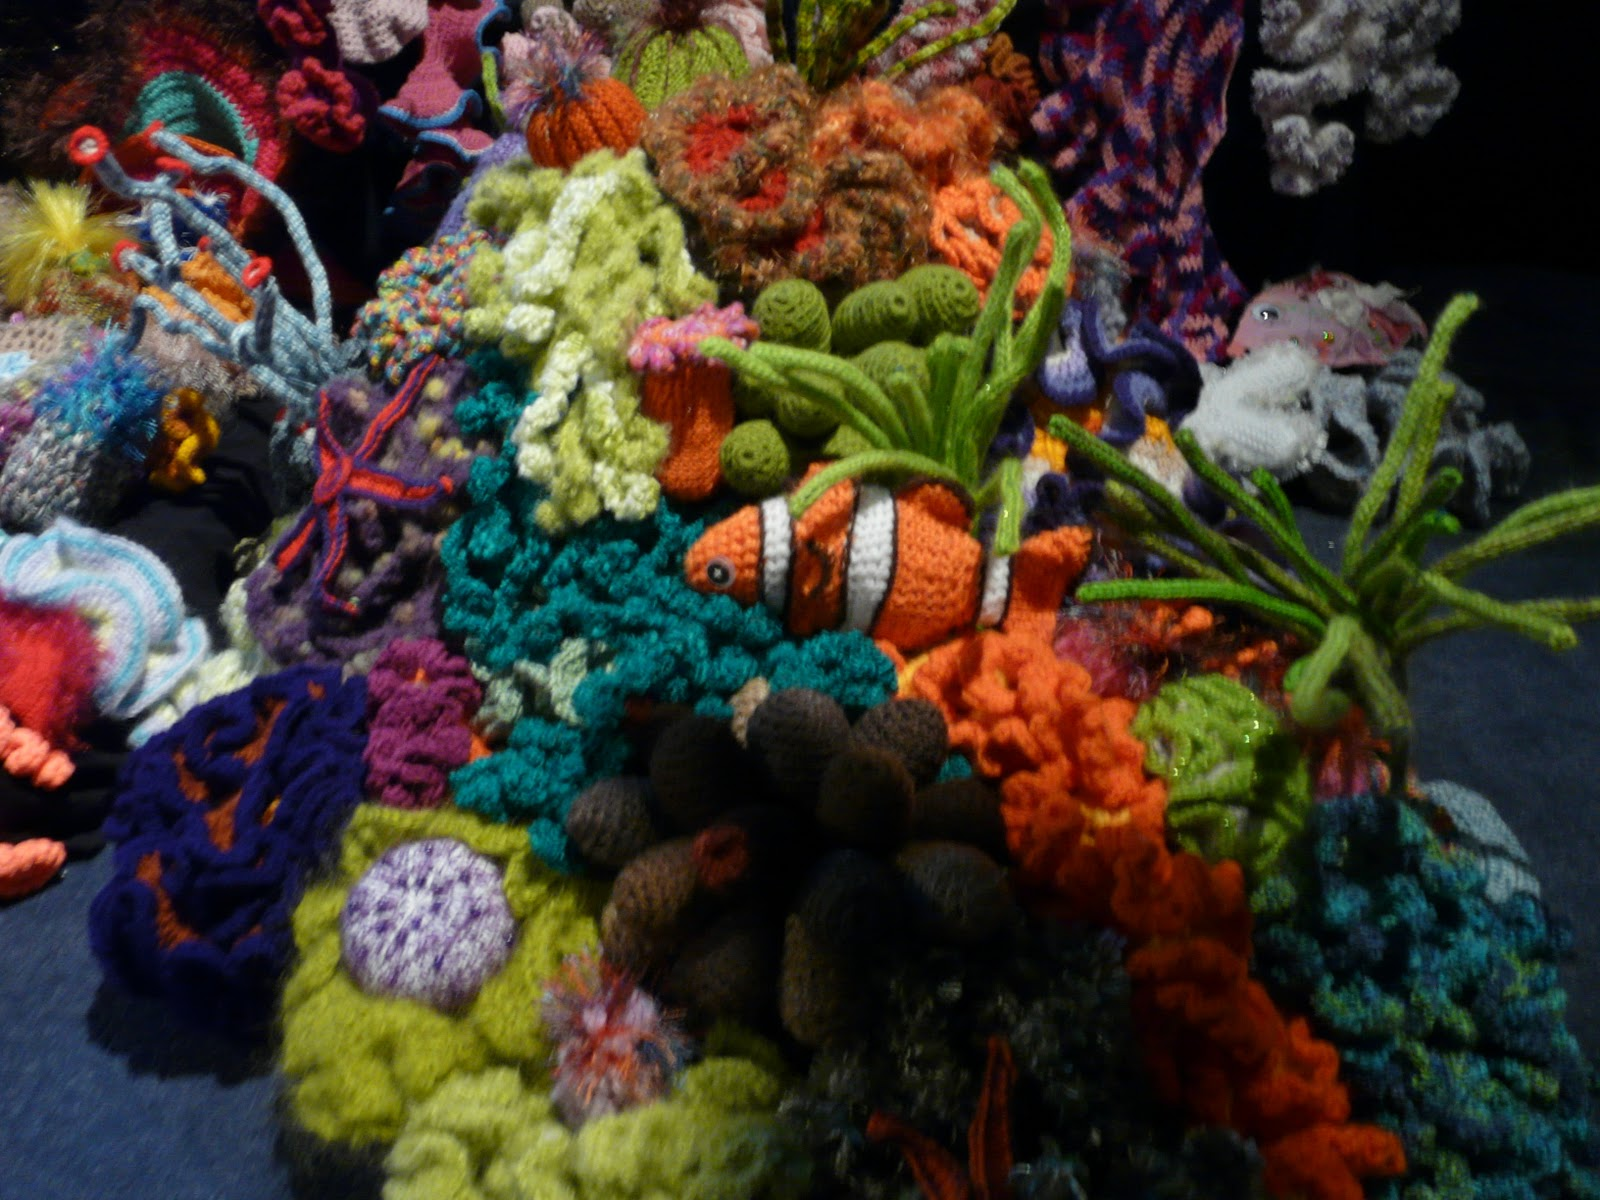 The Land of Melting Shadows: Crochet Coral Reef